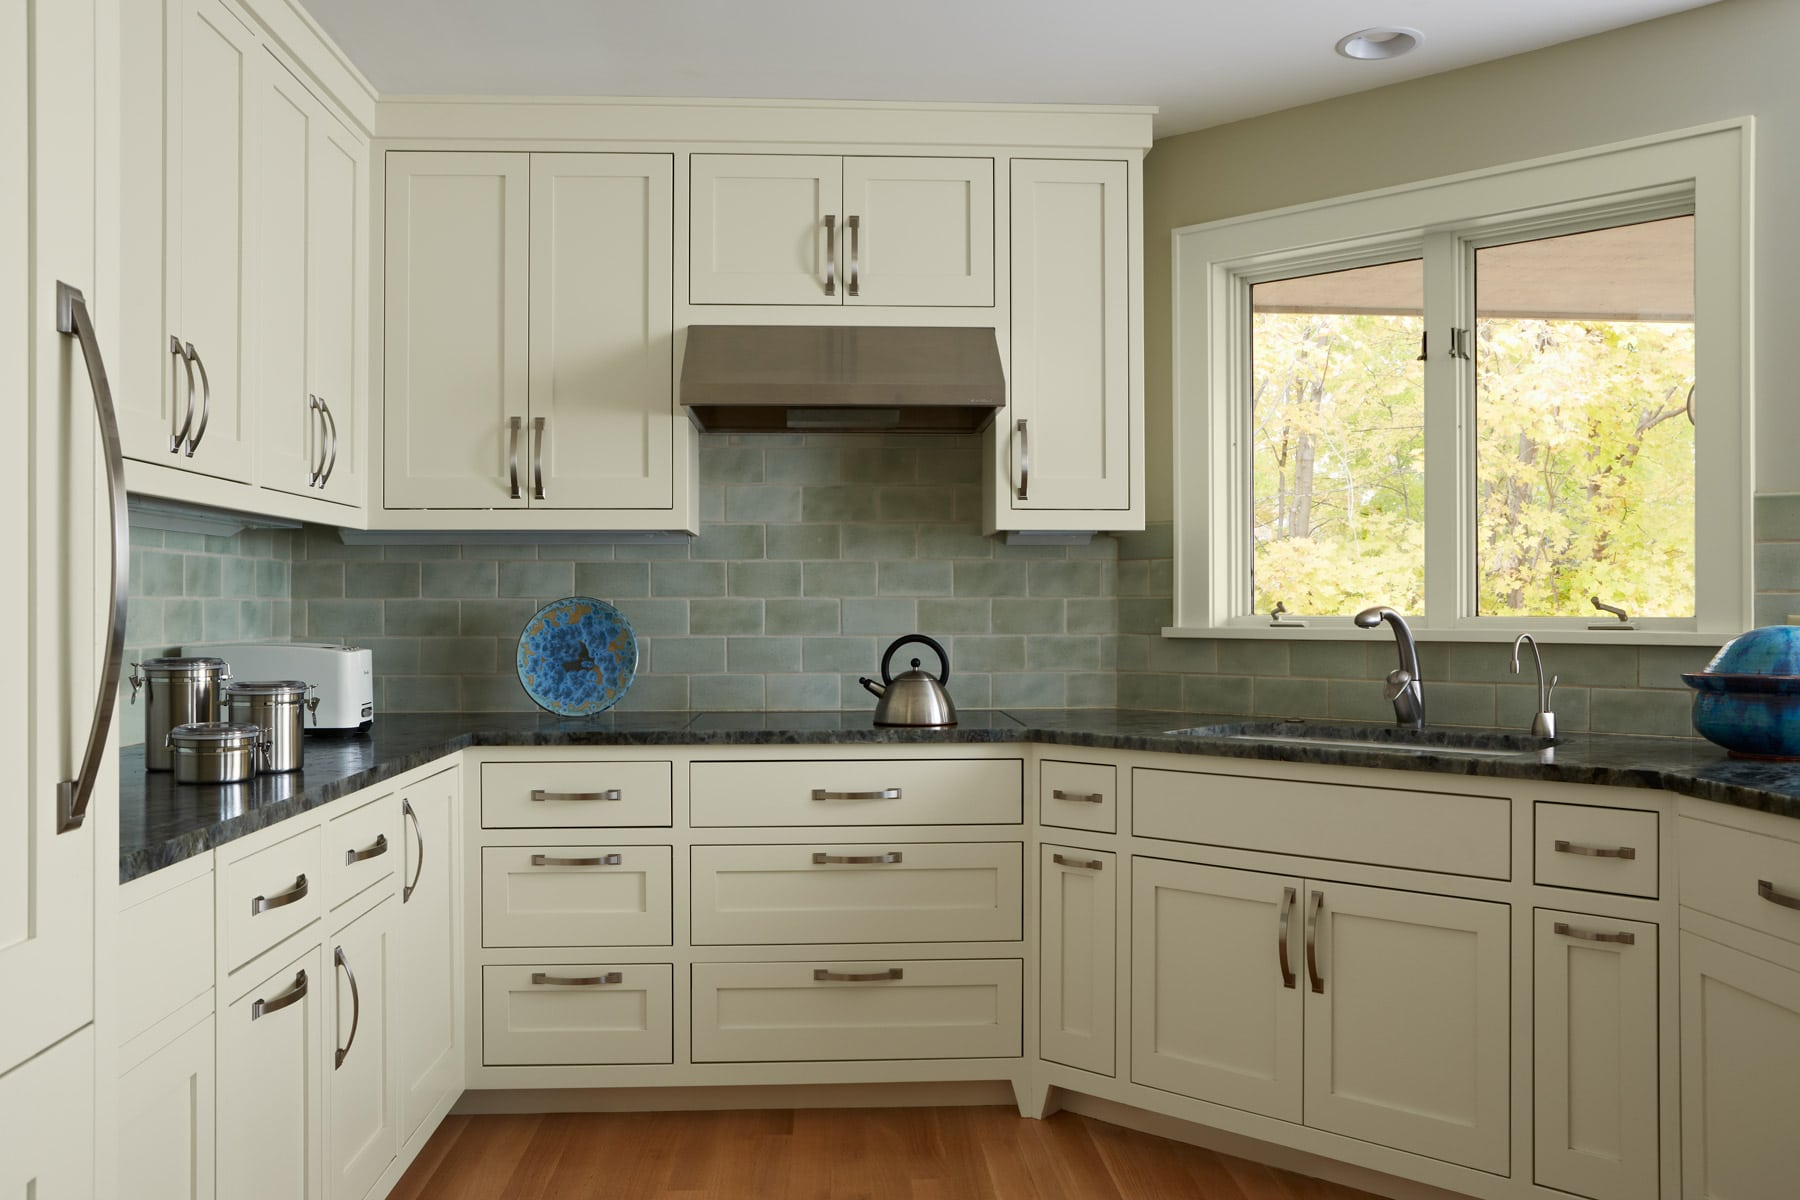 classic kitchen in coastal color palette and cream shaker cabinets